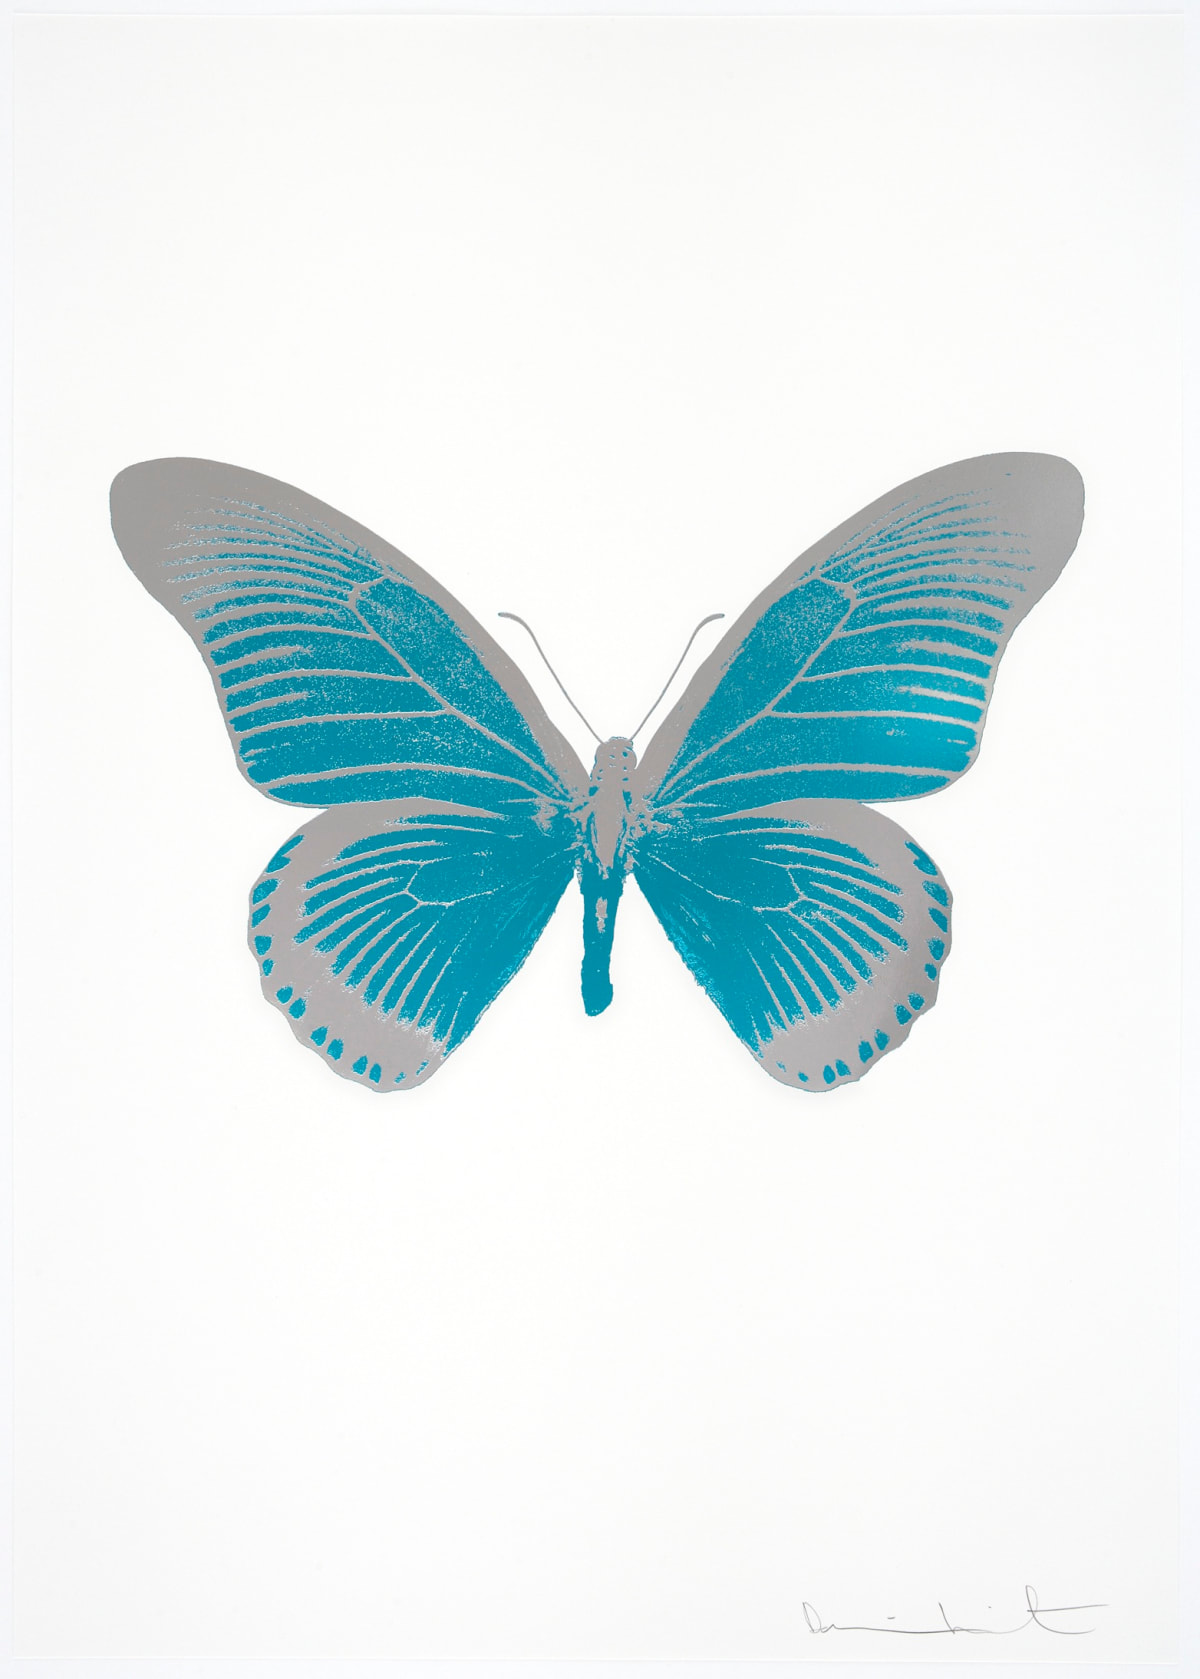 Damien Hirst The Souls IV - Topaz/Silver Gloss, 2010 2 colour foil block on 300gsm Arches 88 archival paper. Signed and numbered. Published by Paul Stolper and Other Criteria 72 x 51cm OC7996 / 1418-19 Edition of 15